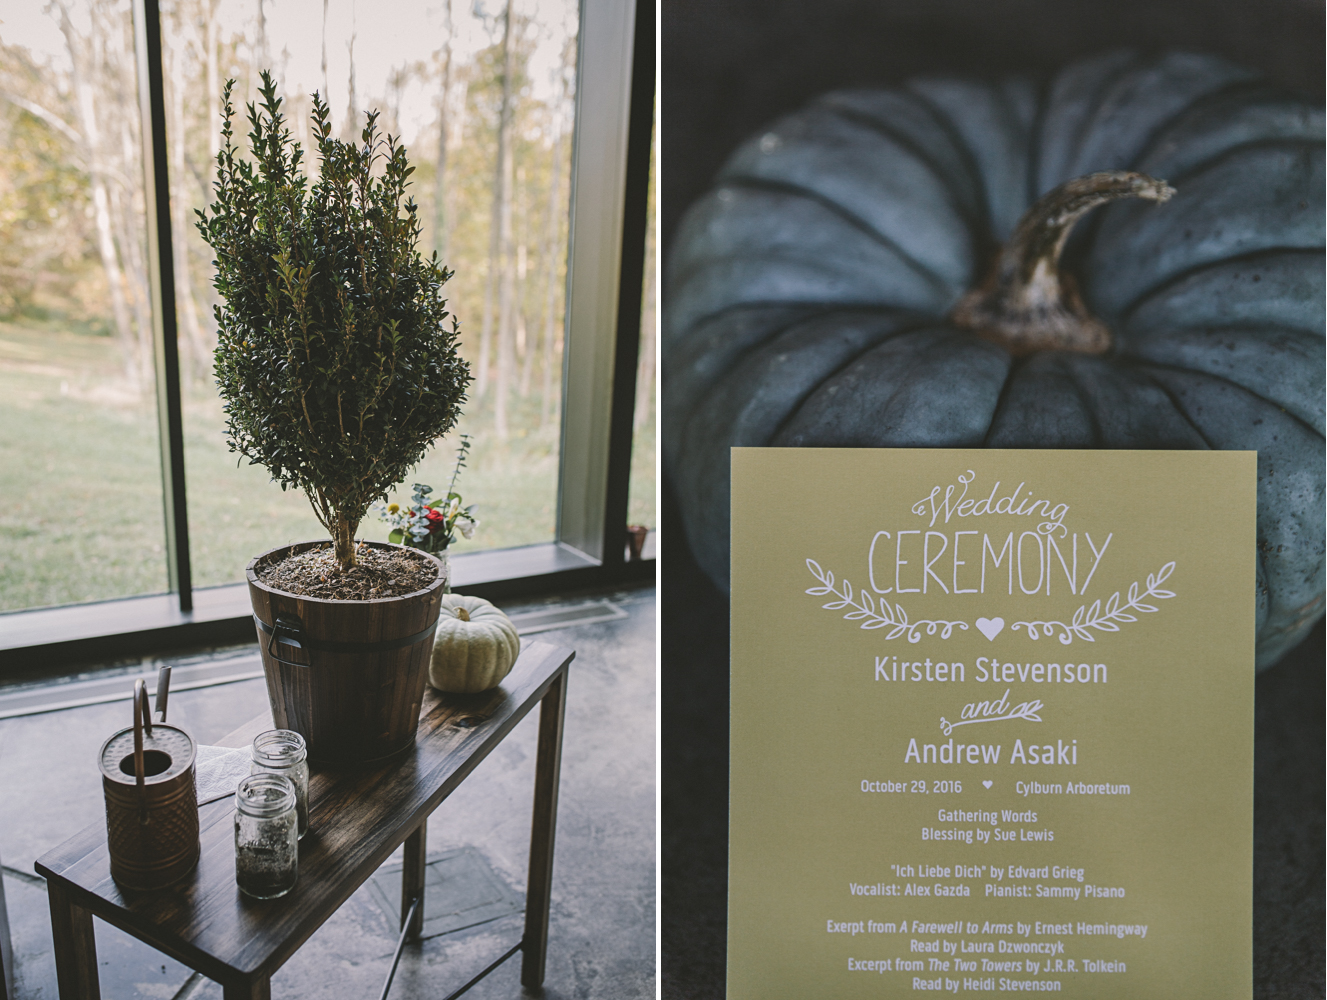 cylburn arboretum baltimore wedding invitation plant tree.jpg